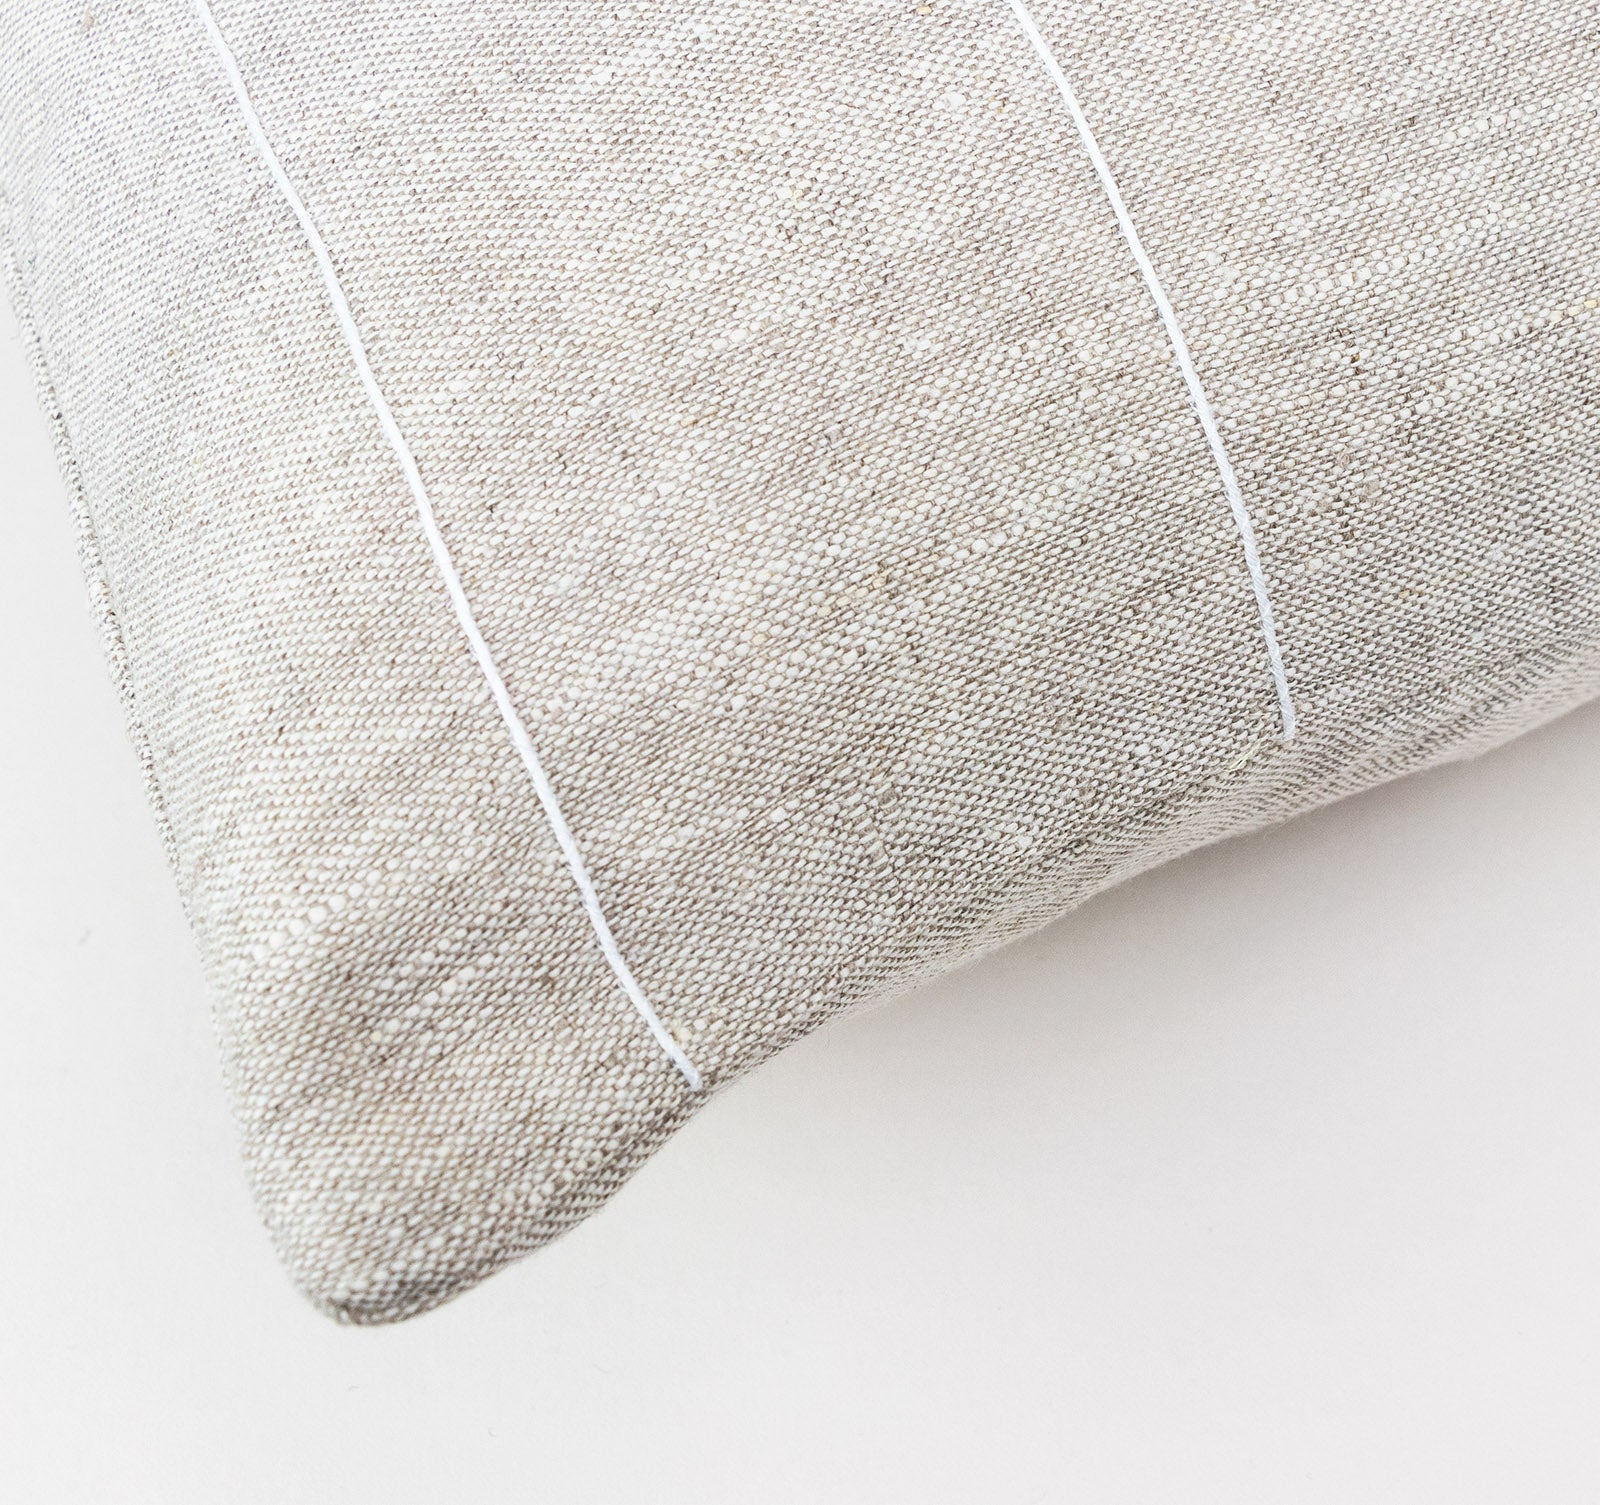 Embroidered detailing of white stripe on beige linen cushion cover